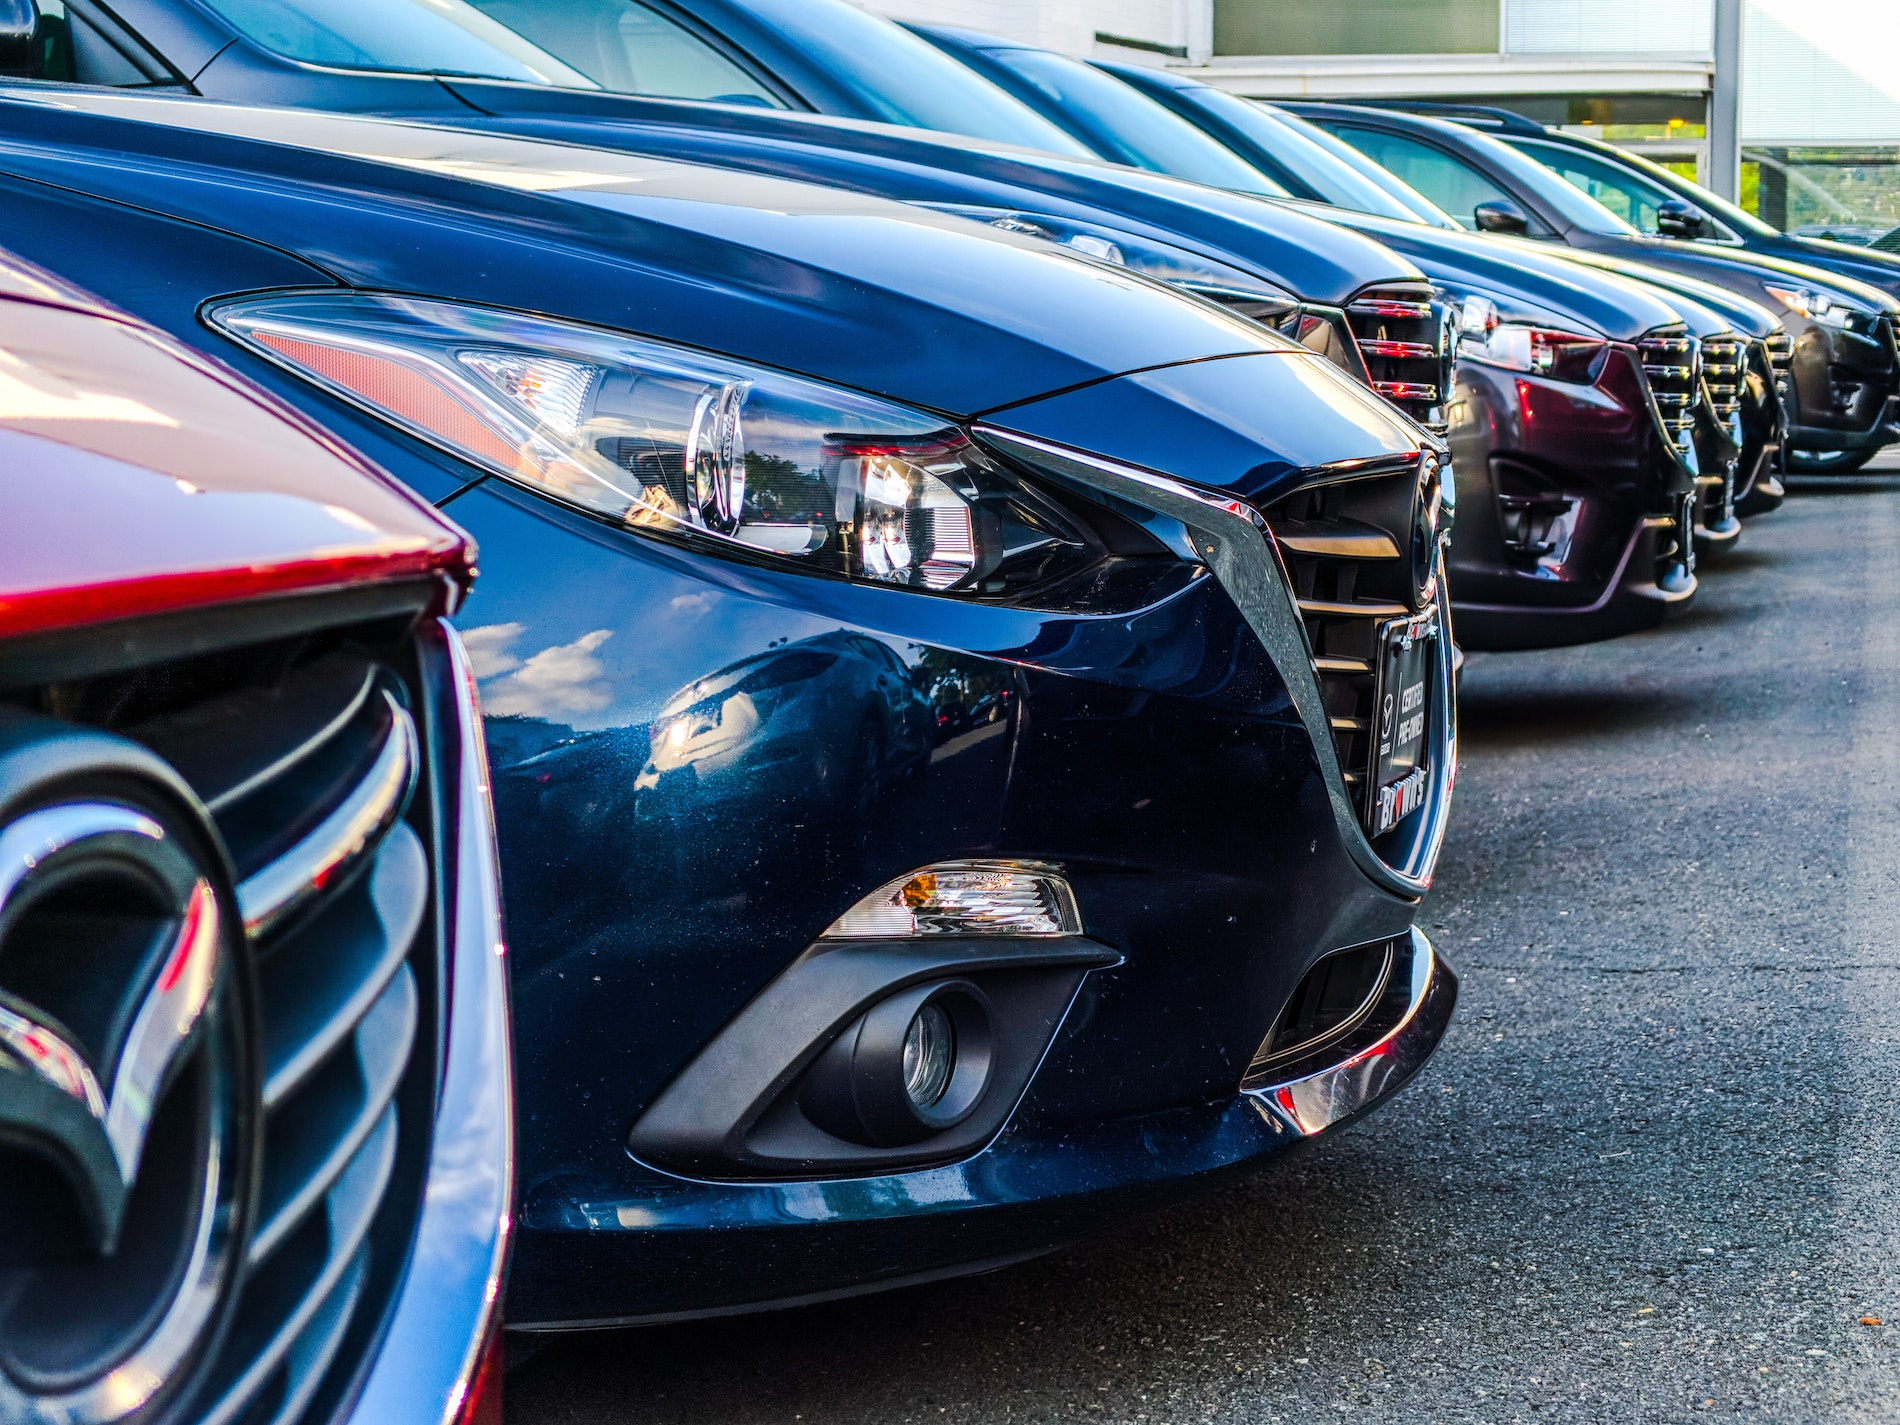 cars lined up at a car dealership that processing payments via ach